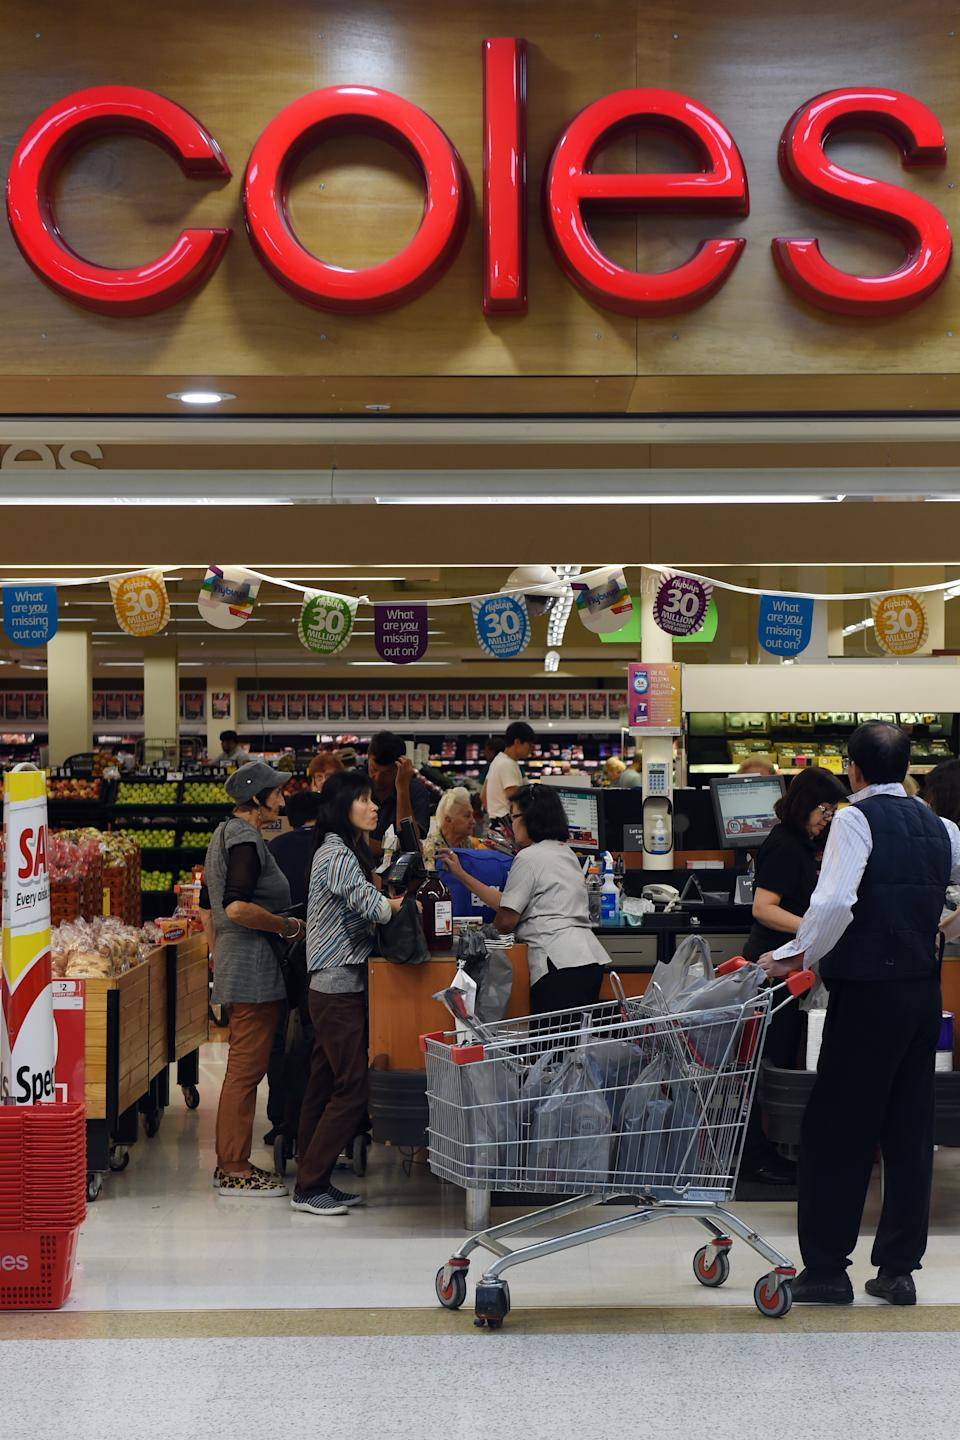 Shoppers queue at the registers at a Coles supermarket in Sydney. Source: AAP